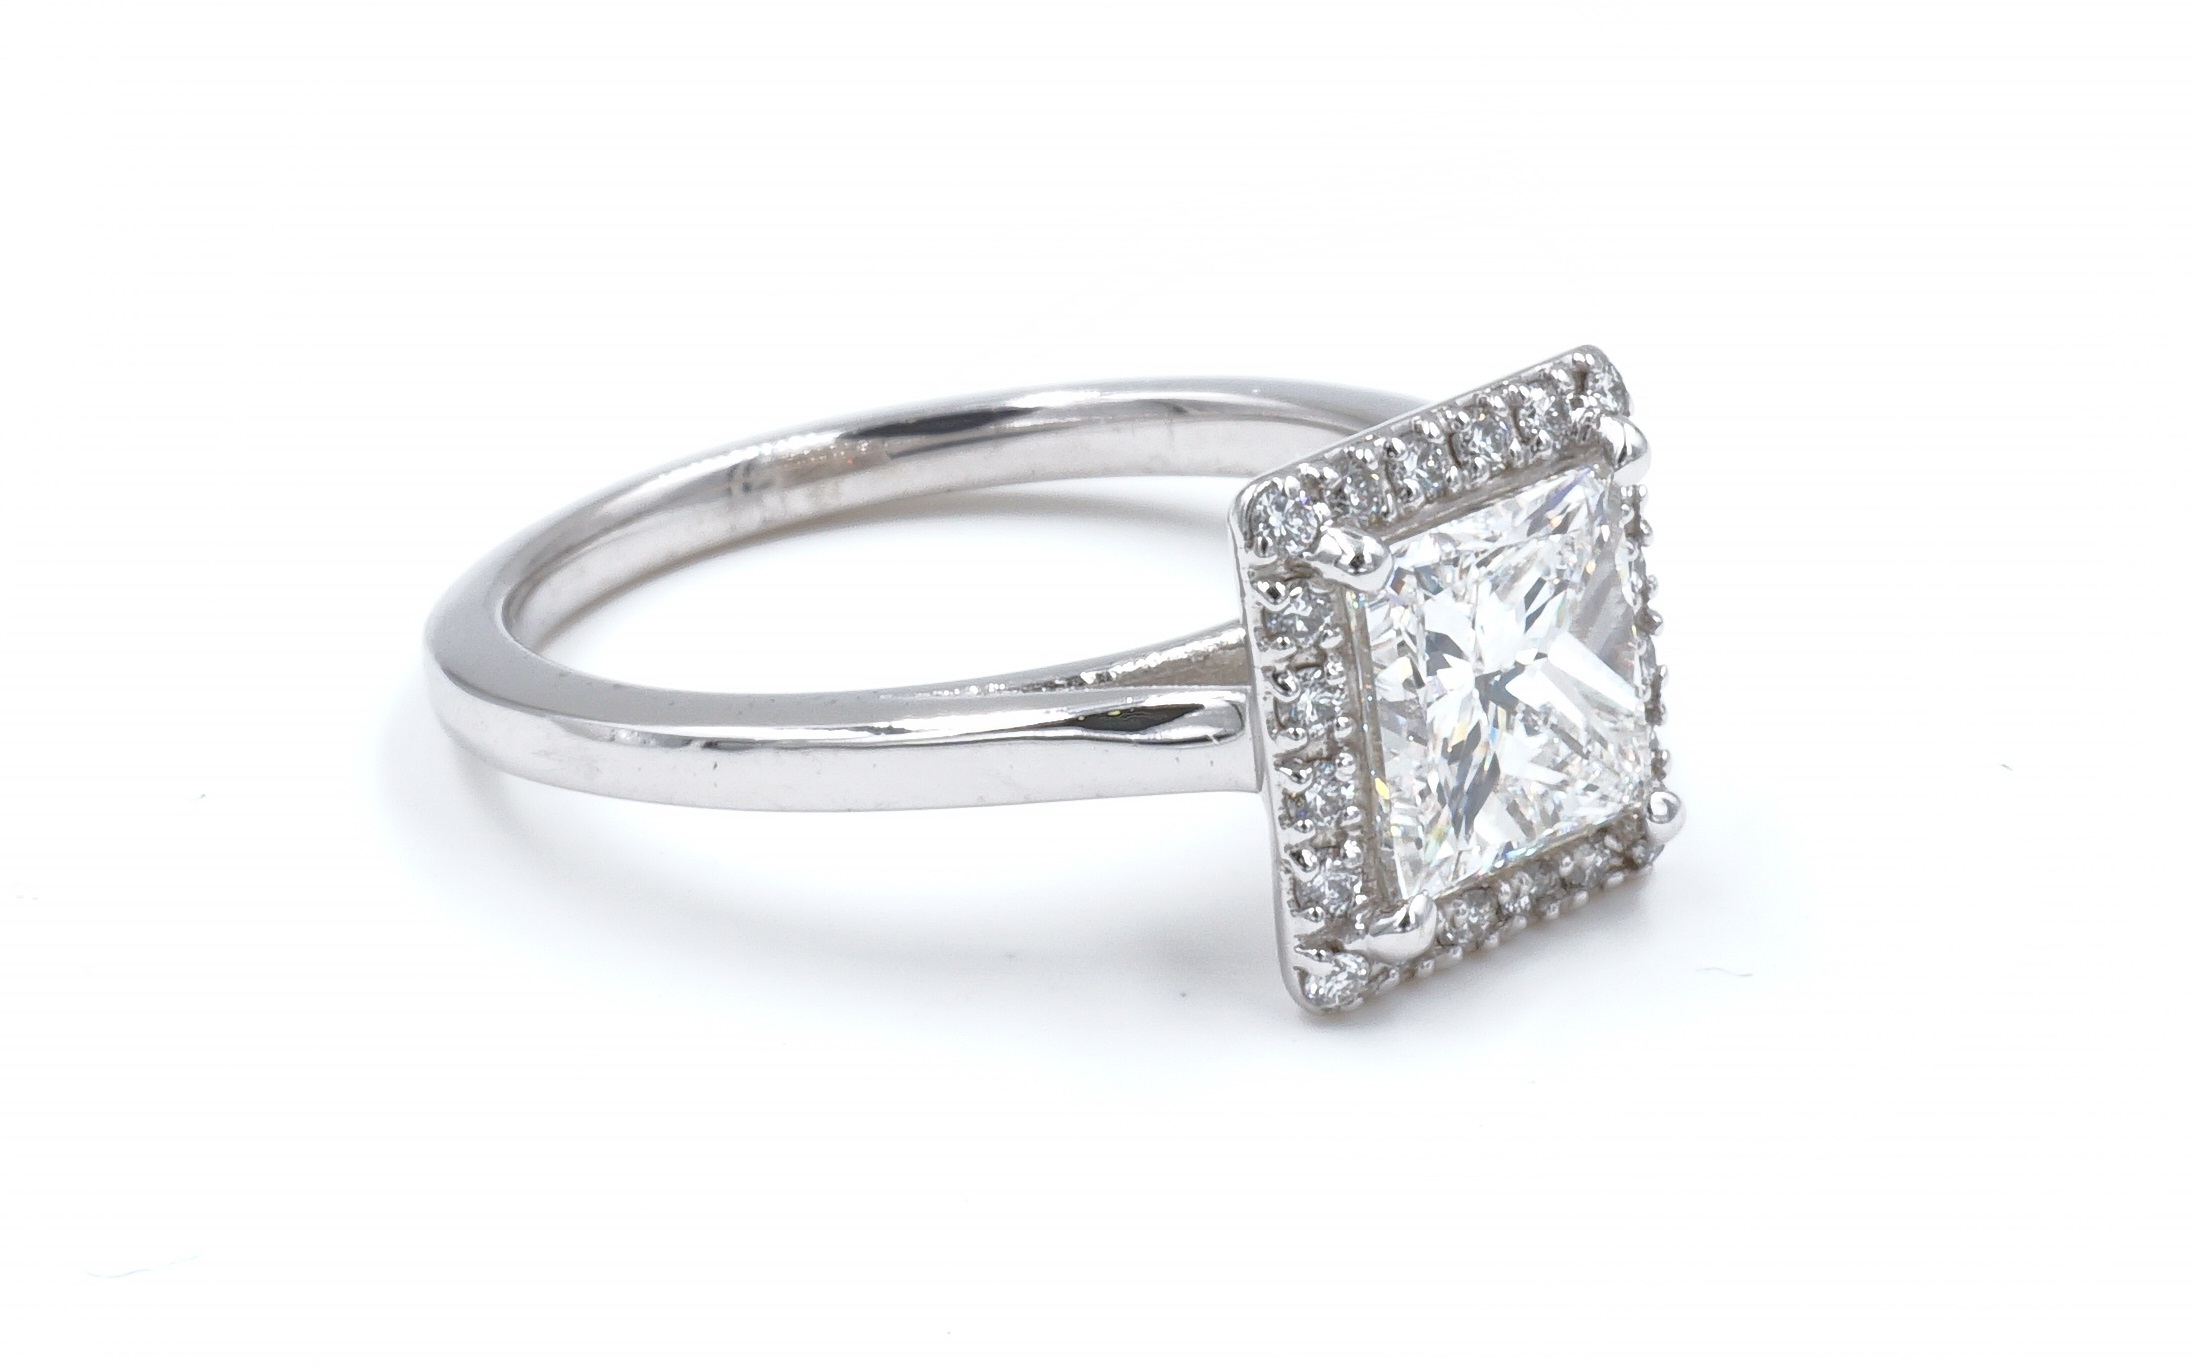 Halo Style Princess Cut Diamond Engagement Ring